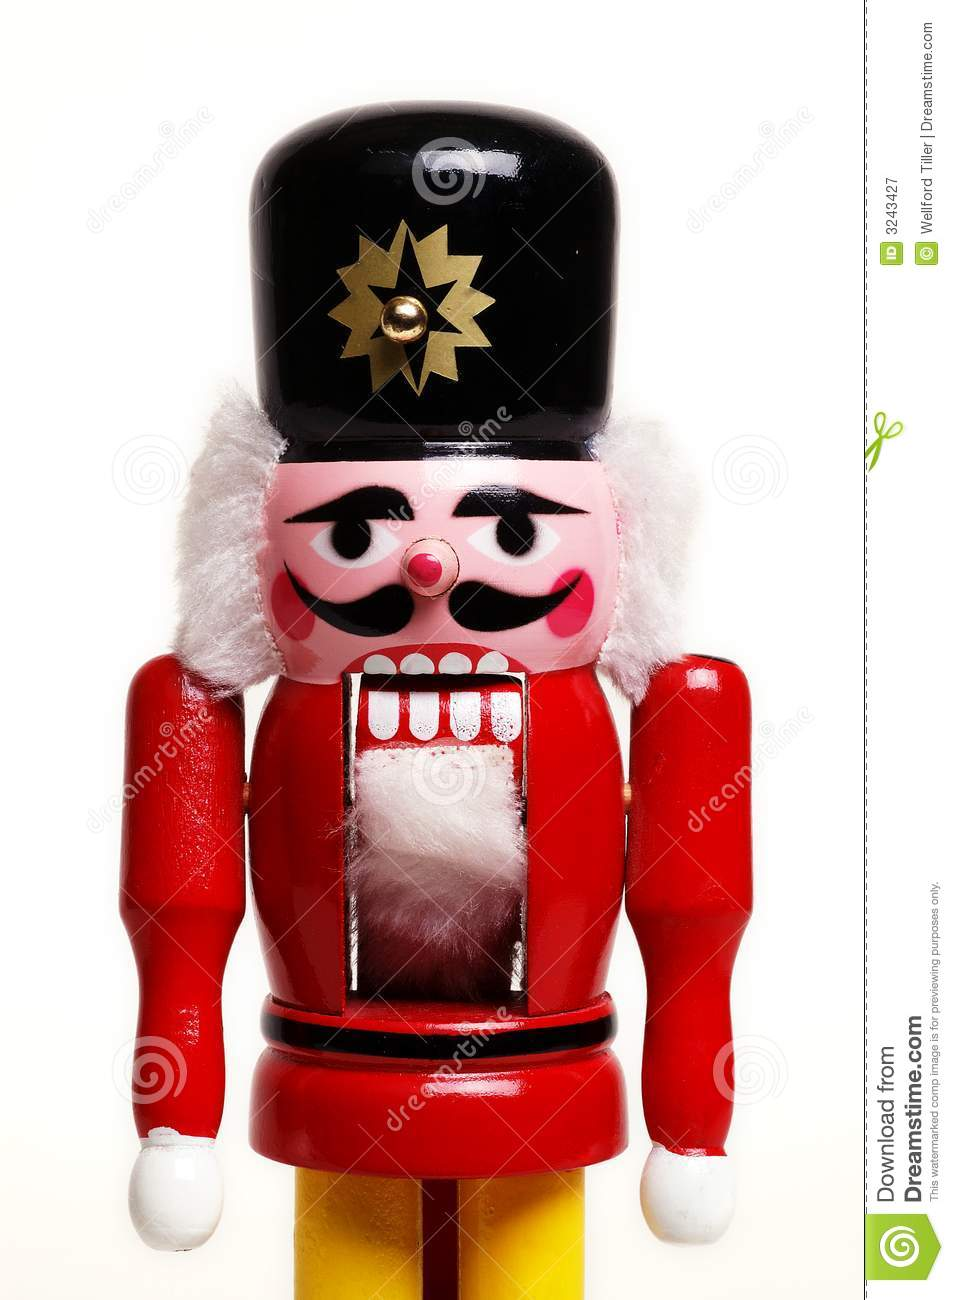 Old style wooden nutcracker in the shape of a soldier isolated on ...